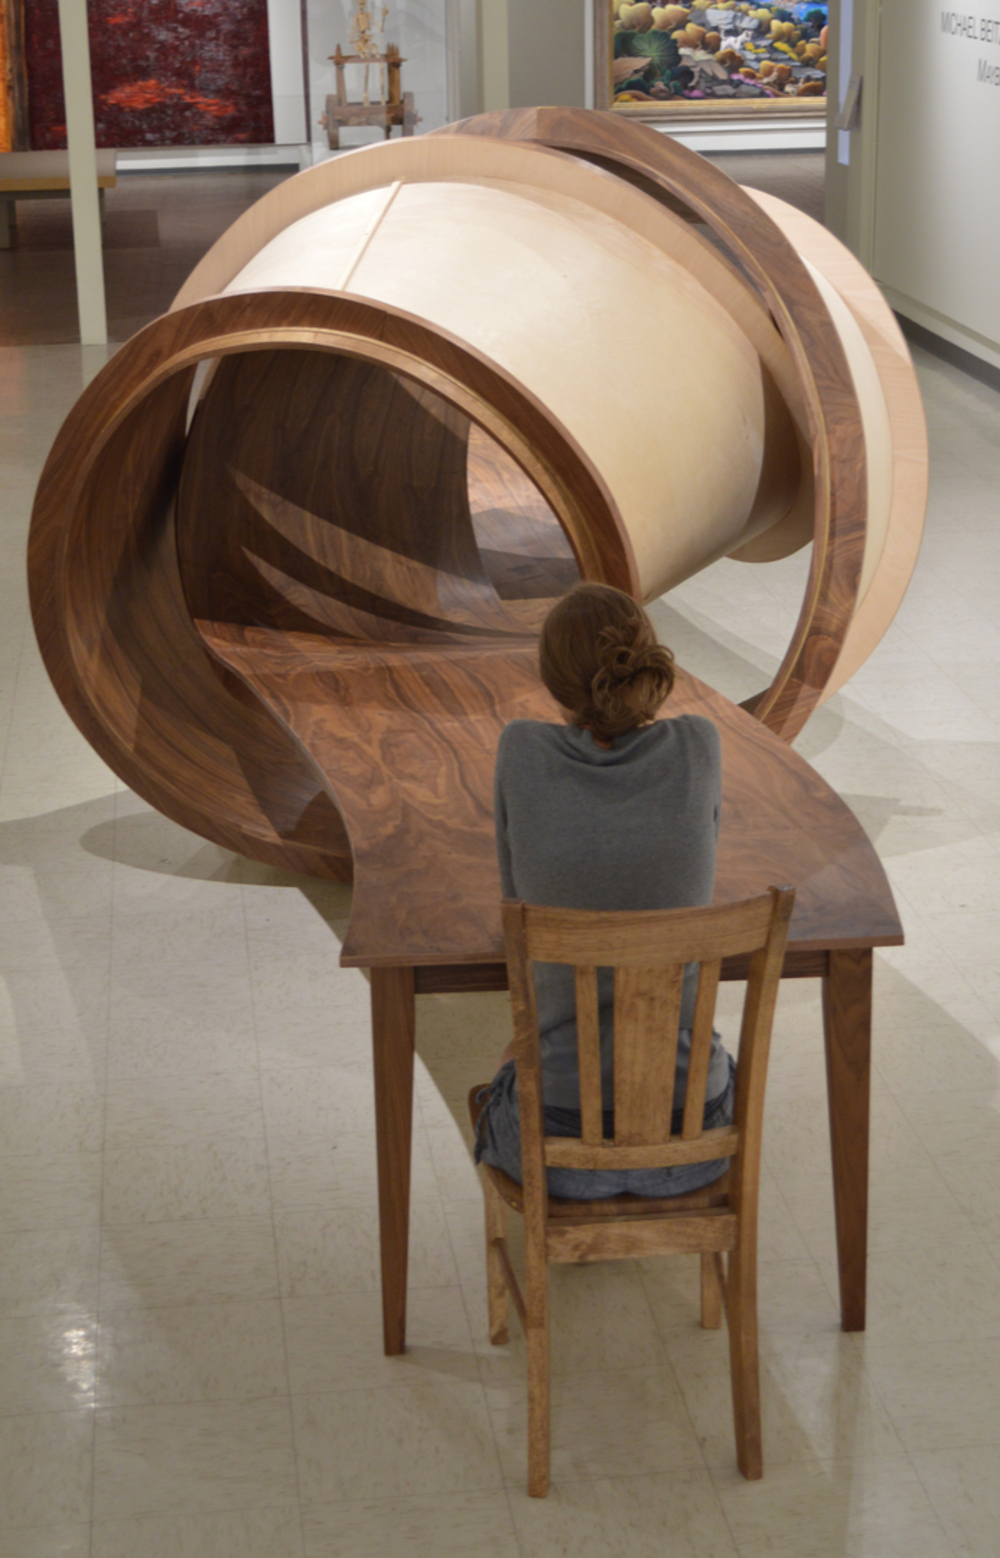 Twisted_Furniture_Design_by_MichaelBeitz